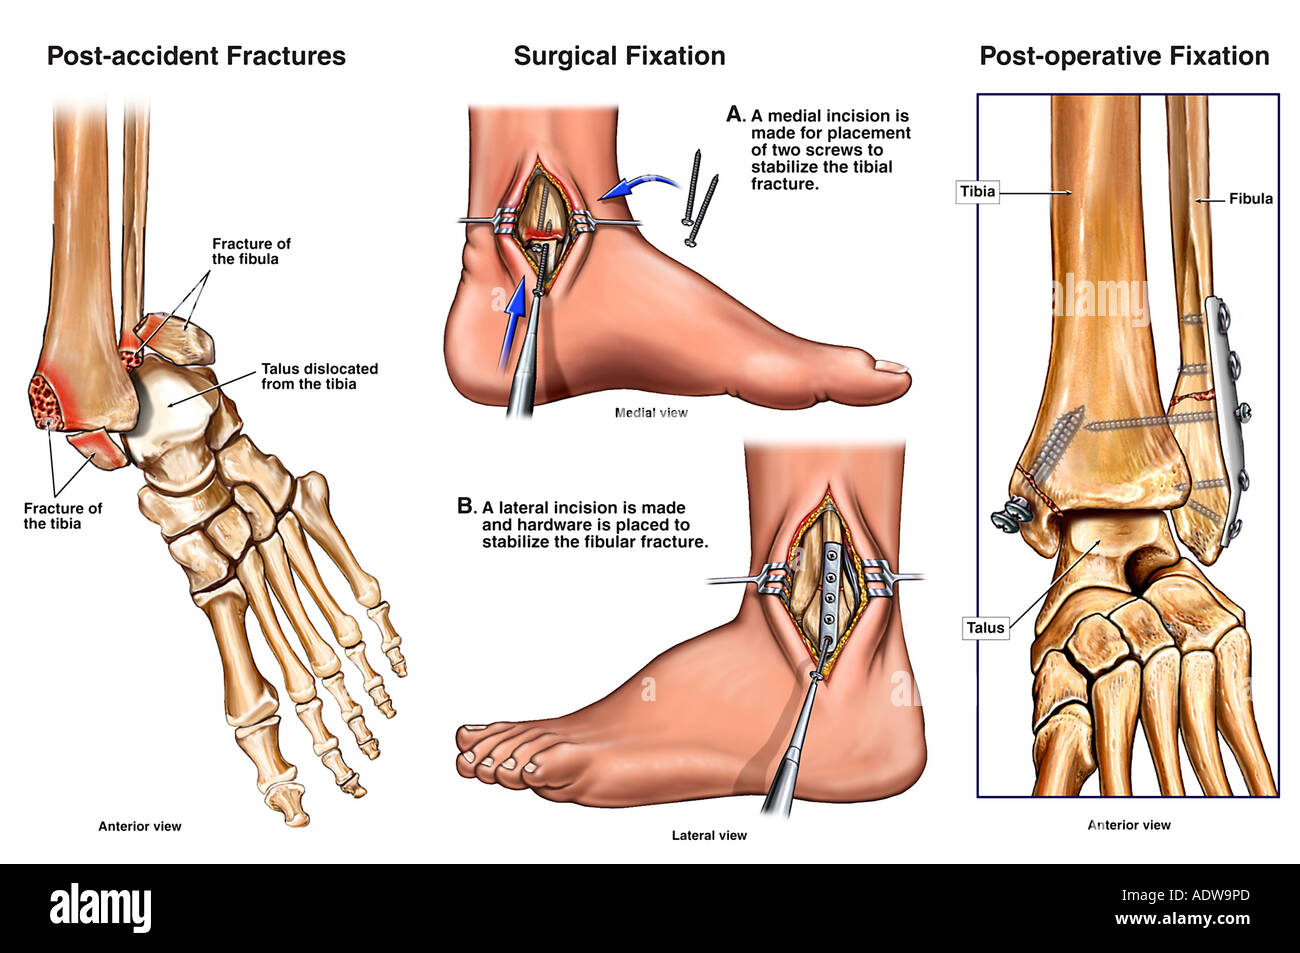 Left Bimalleolar Ankle Fractures with Subsequent Surgical Fixation - Stock Image